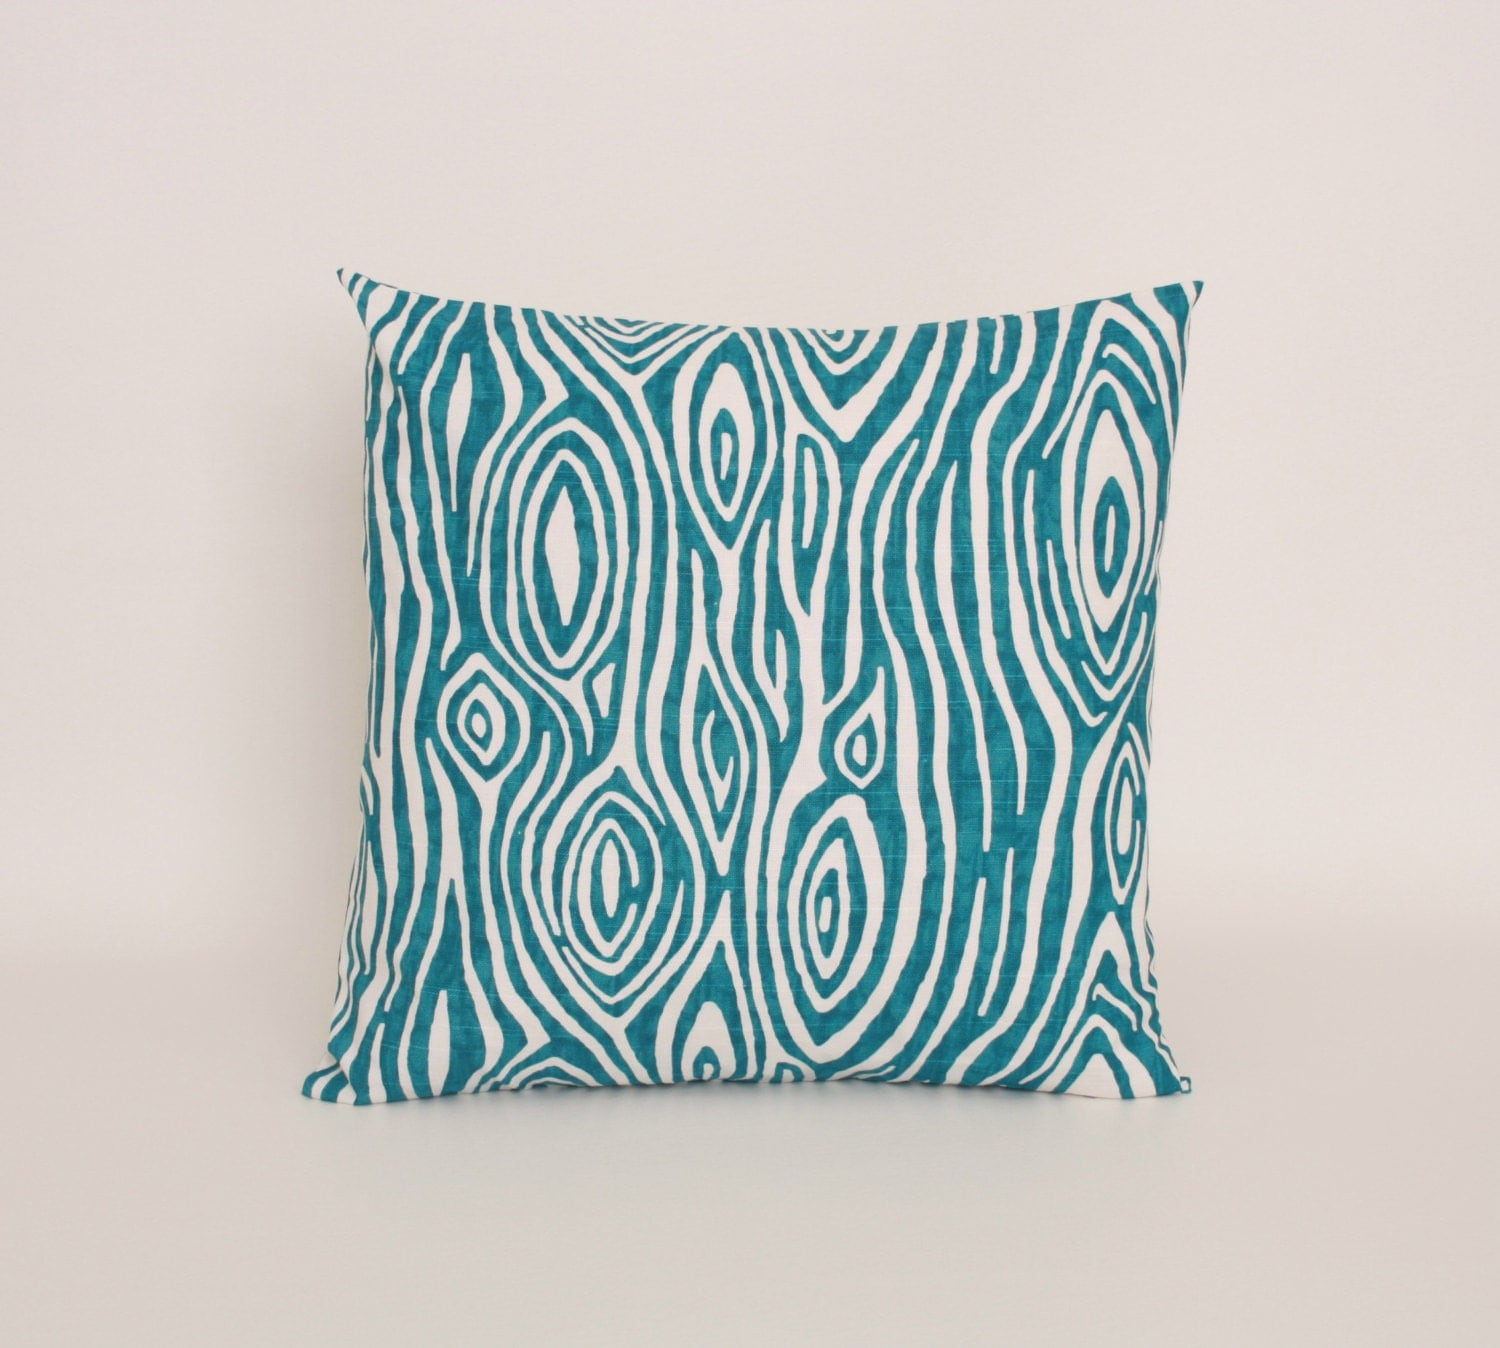 Teal Blue Throw Pillow Covers : Blue Throw Pillow Cover Teal Blue Accent by DimensionsHomeDecor